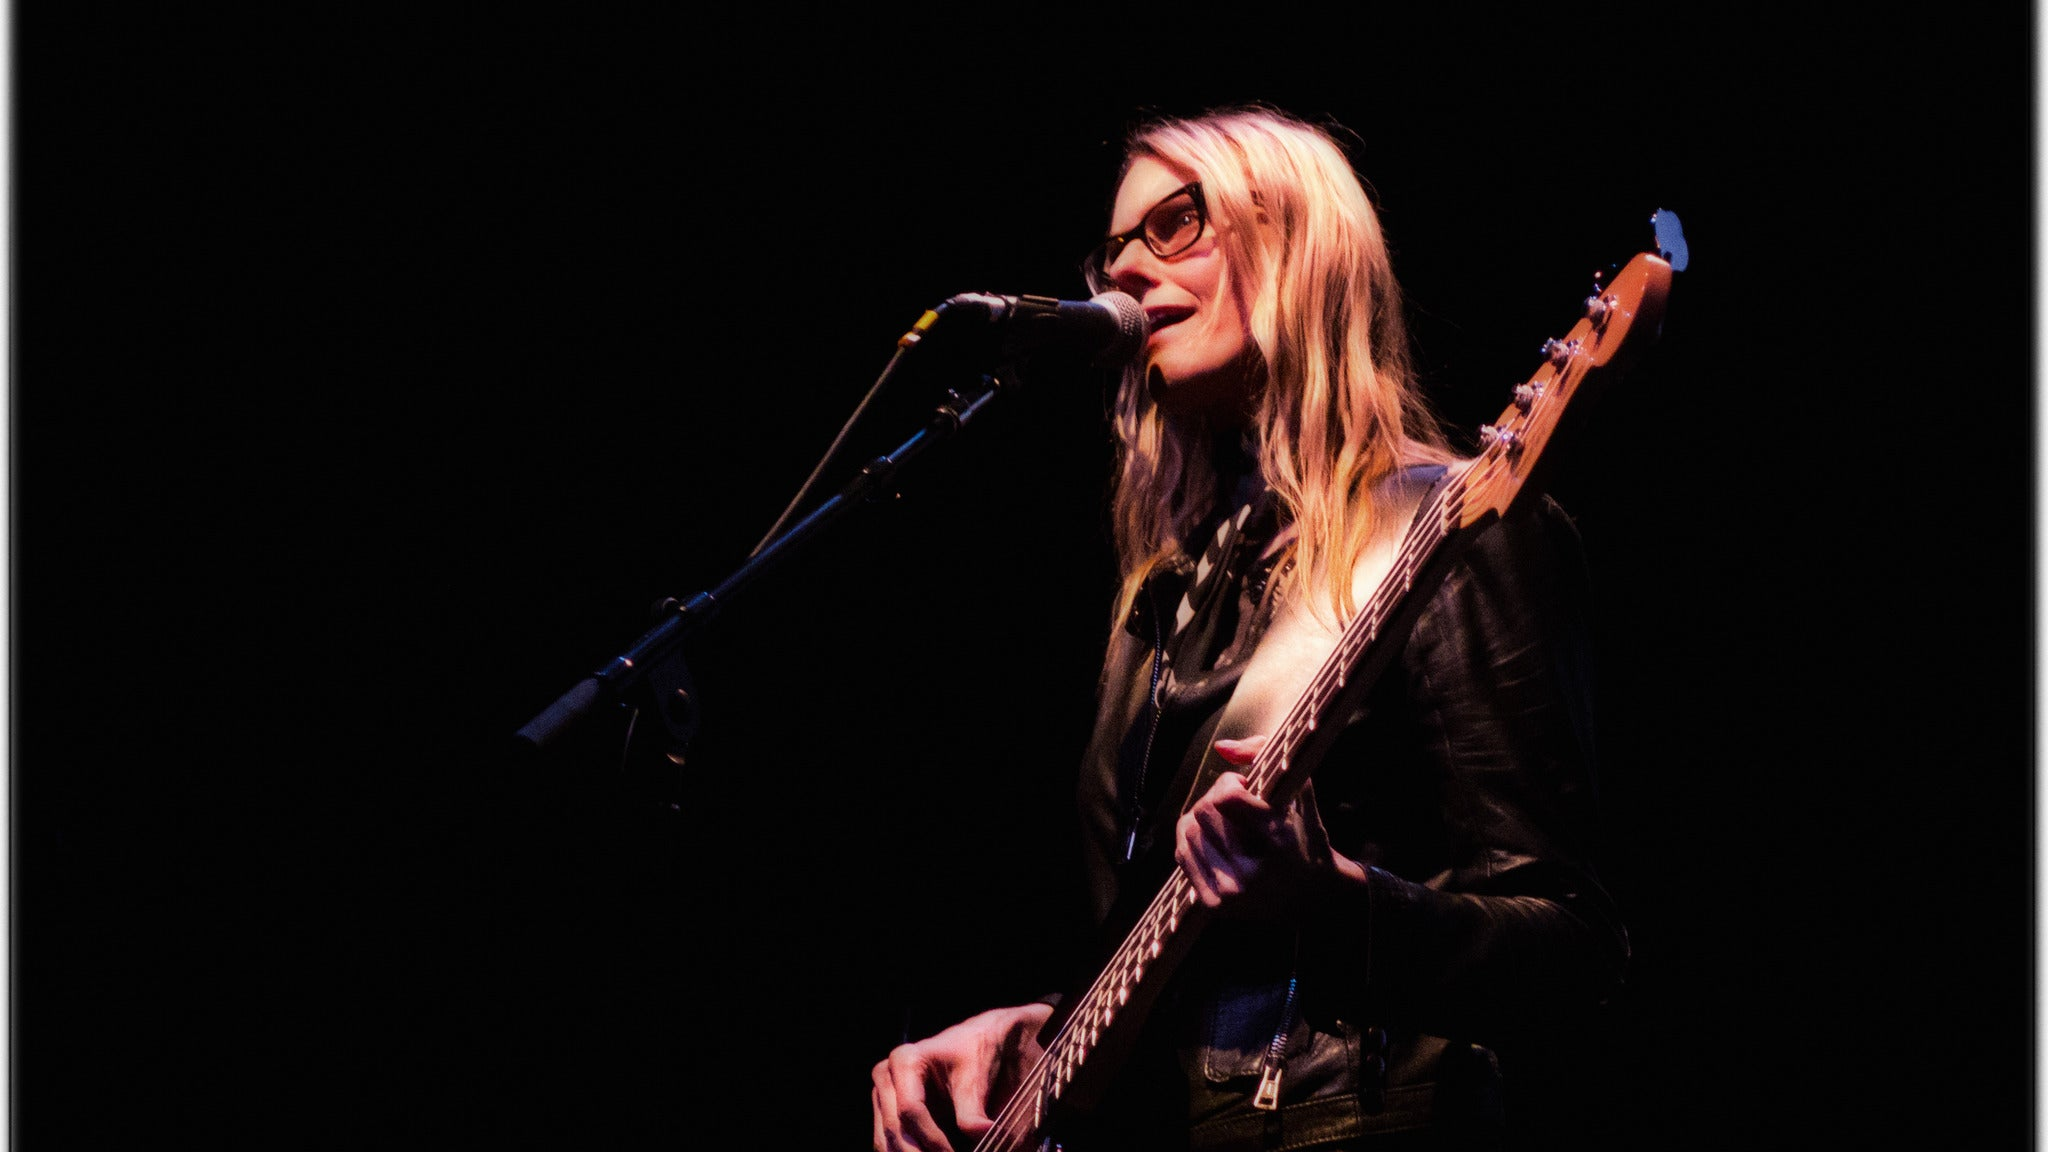 Aimee Mann at The Theatre at Ace Hotel